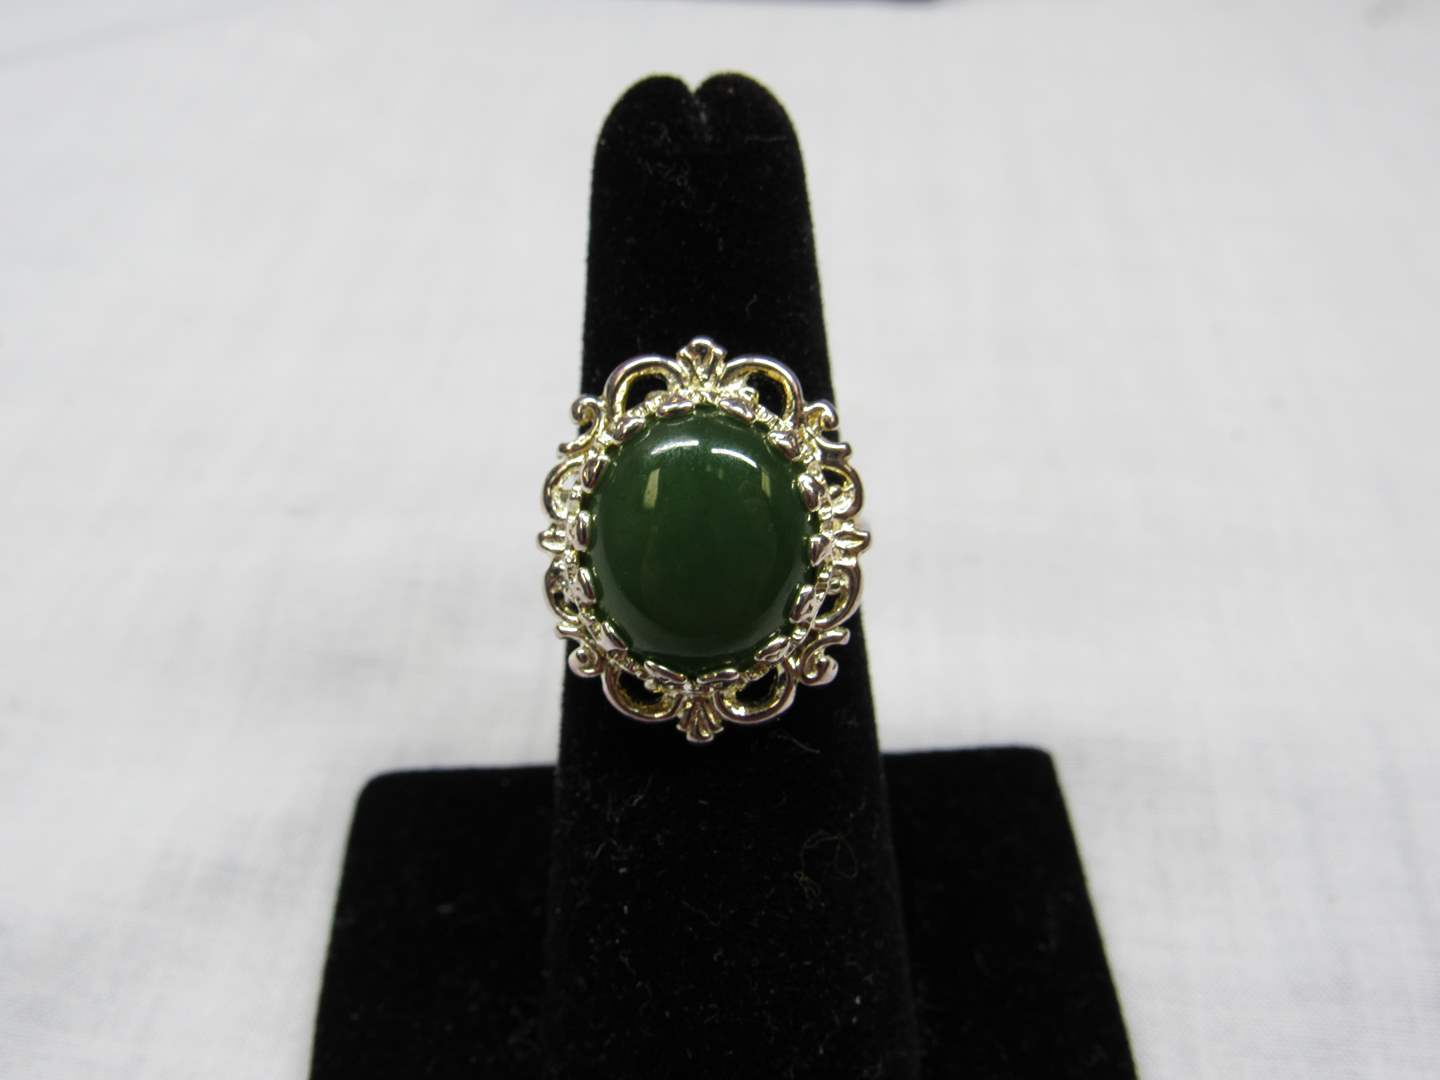 Lot # 114  Stylish sterling silver & green stone ring size 6 (main image)